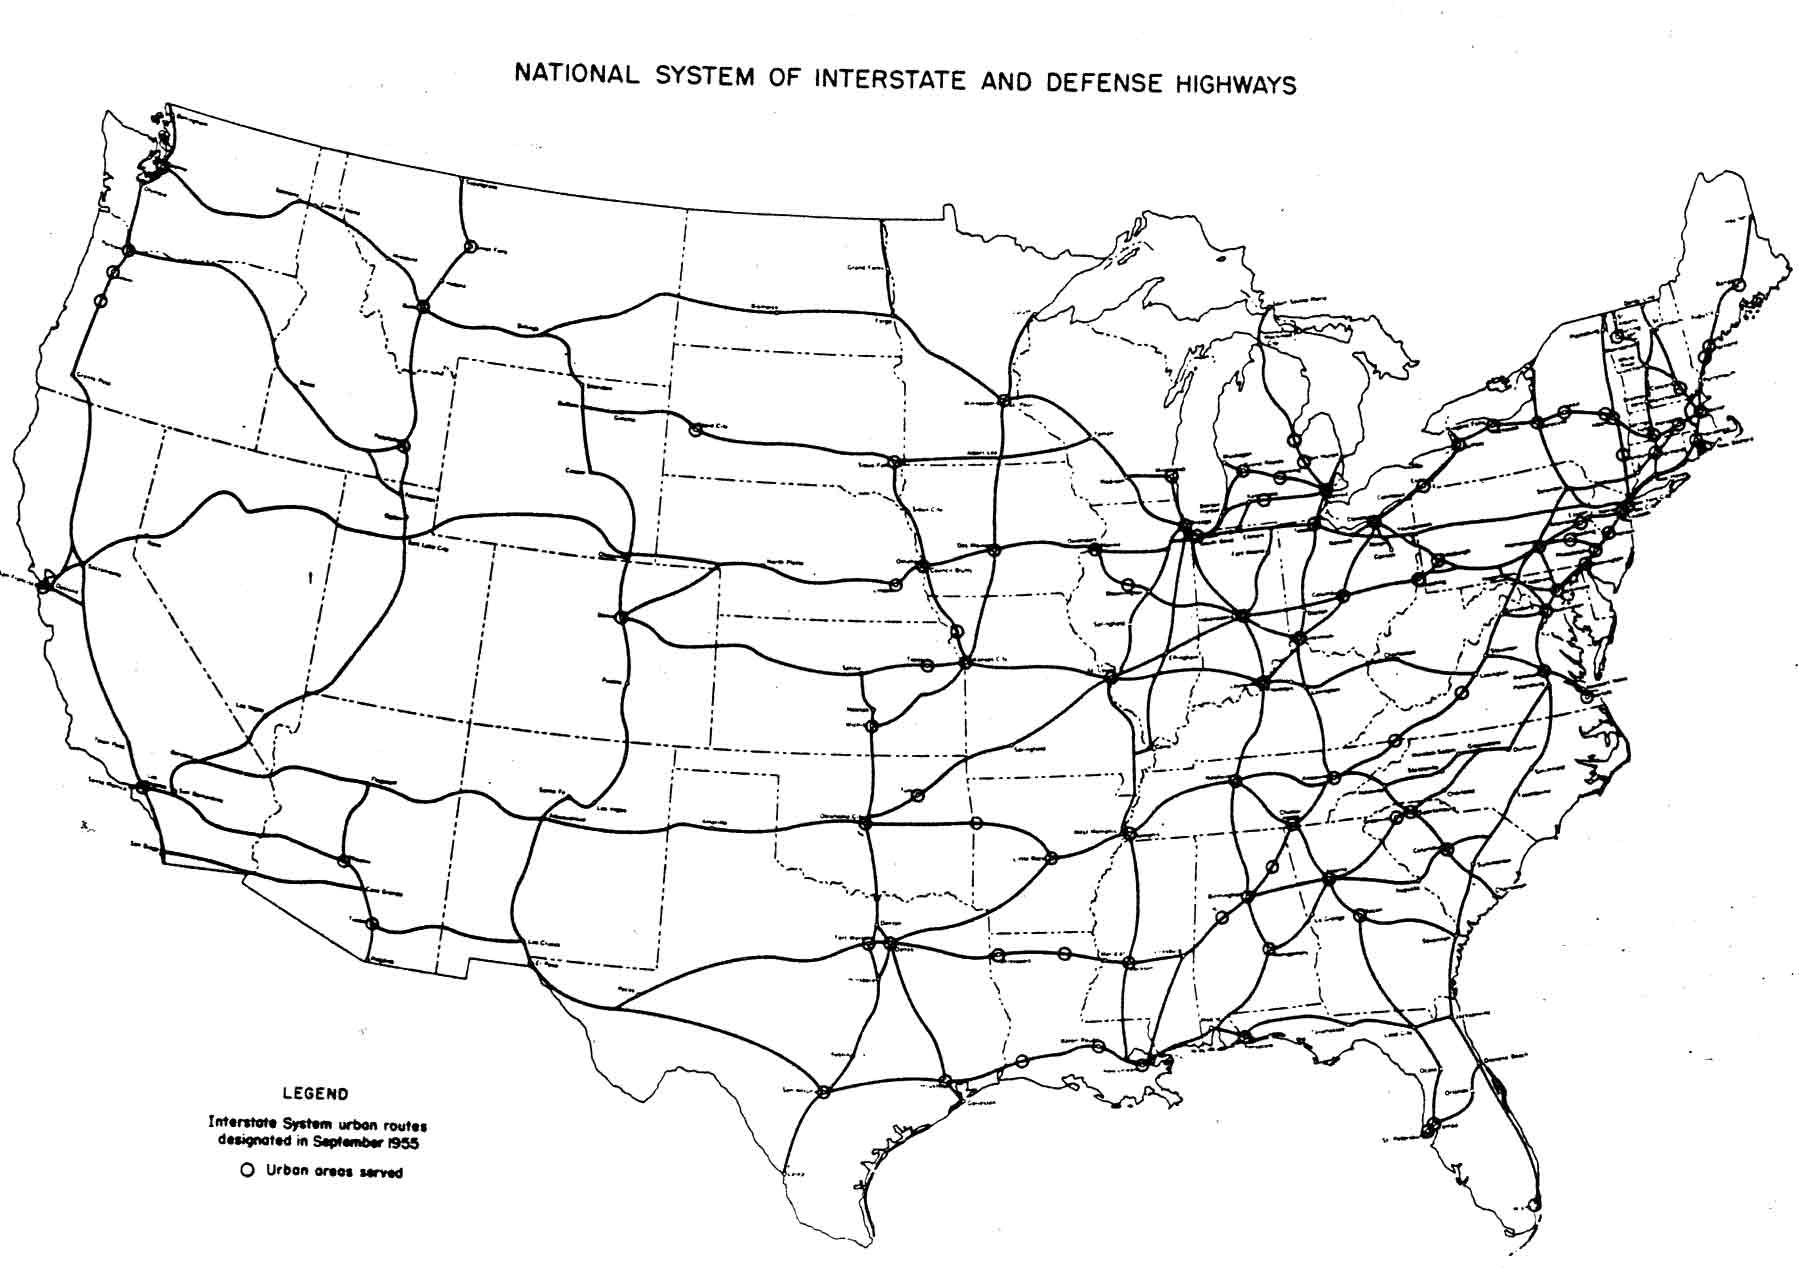 Highways gutted American cities. So why did they build